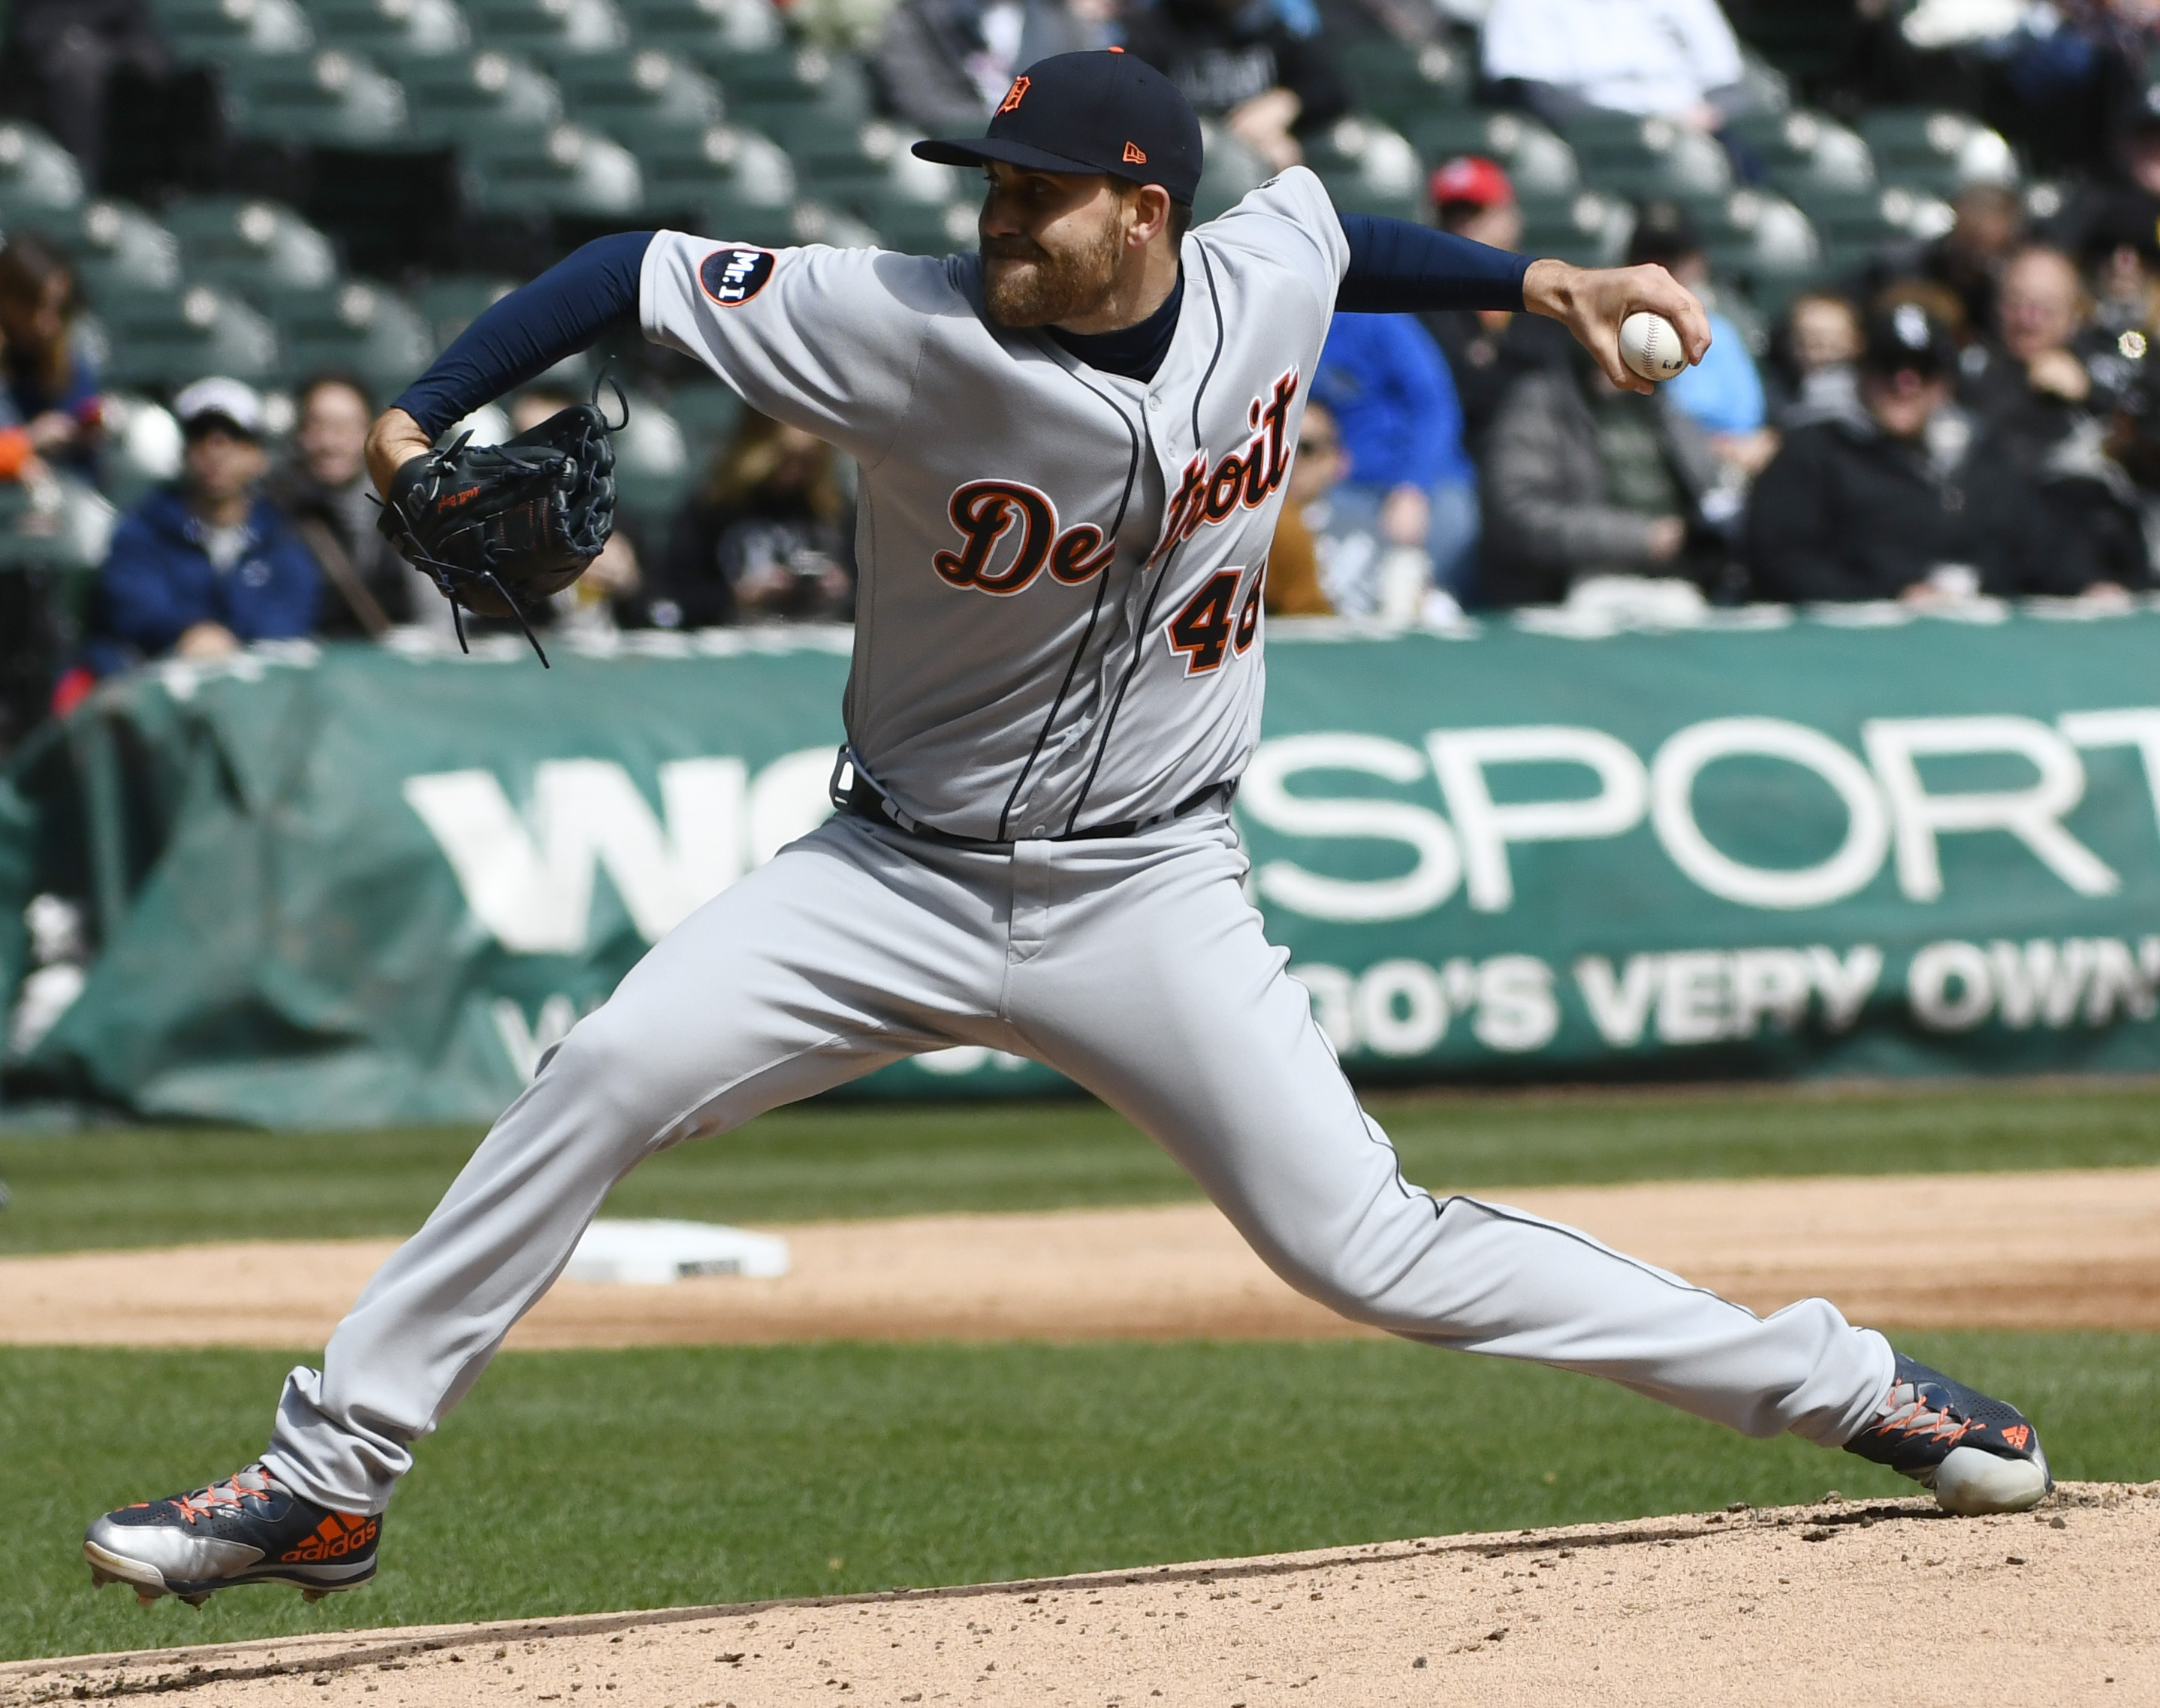 9996222-mlb-detroit-tigers-at-chicago-white-sox